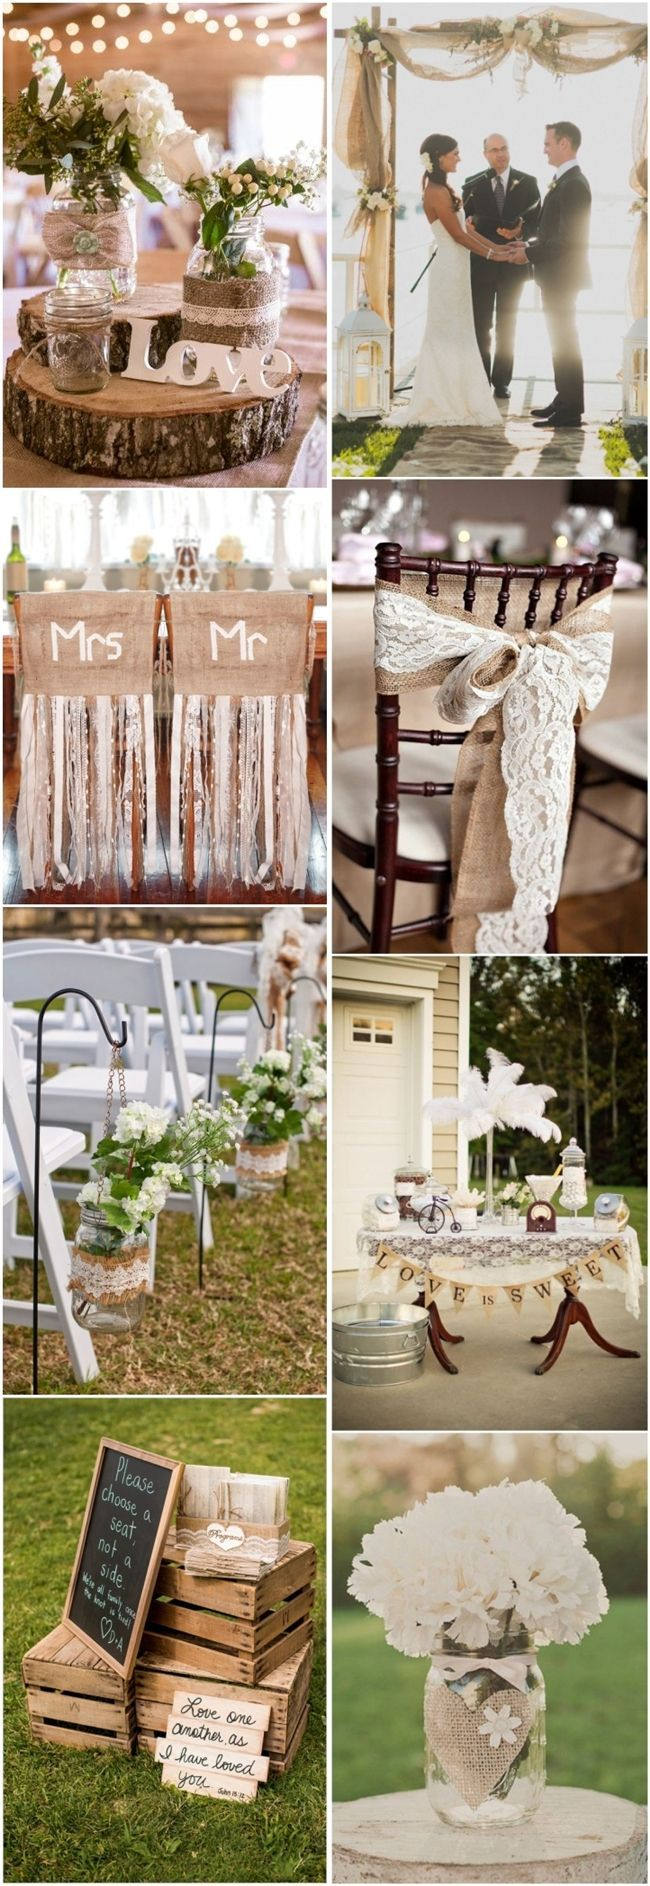 17 Best Ideas About Lace Wedding Decorations On Pinterest Lace Decor Vintage Party